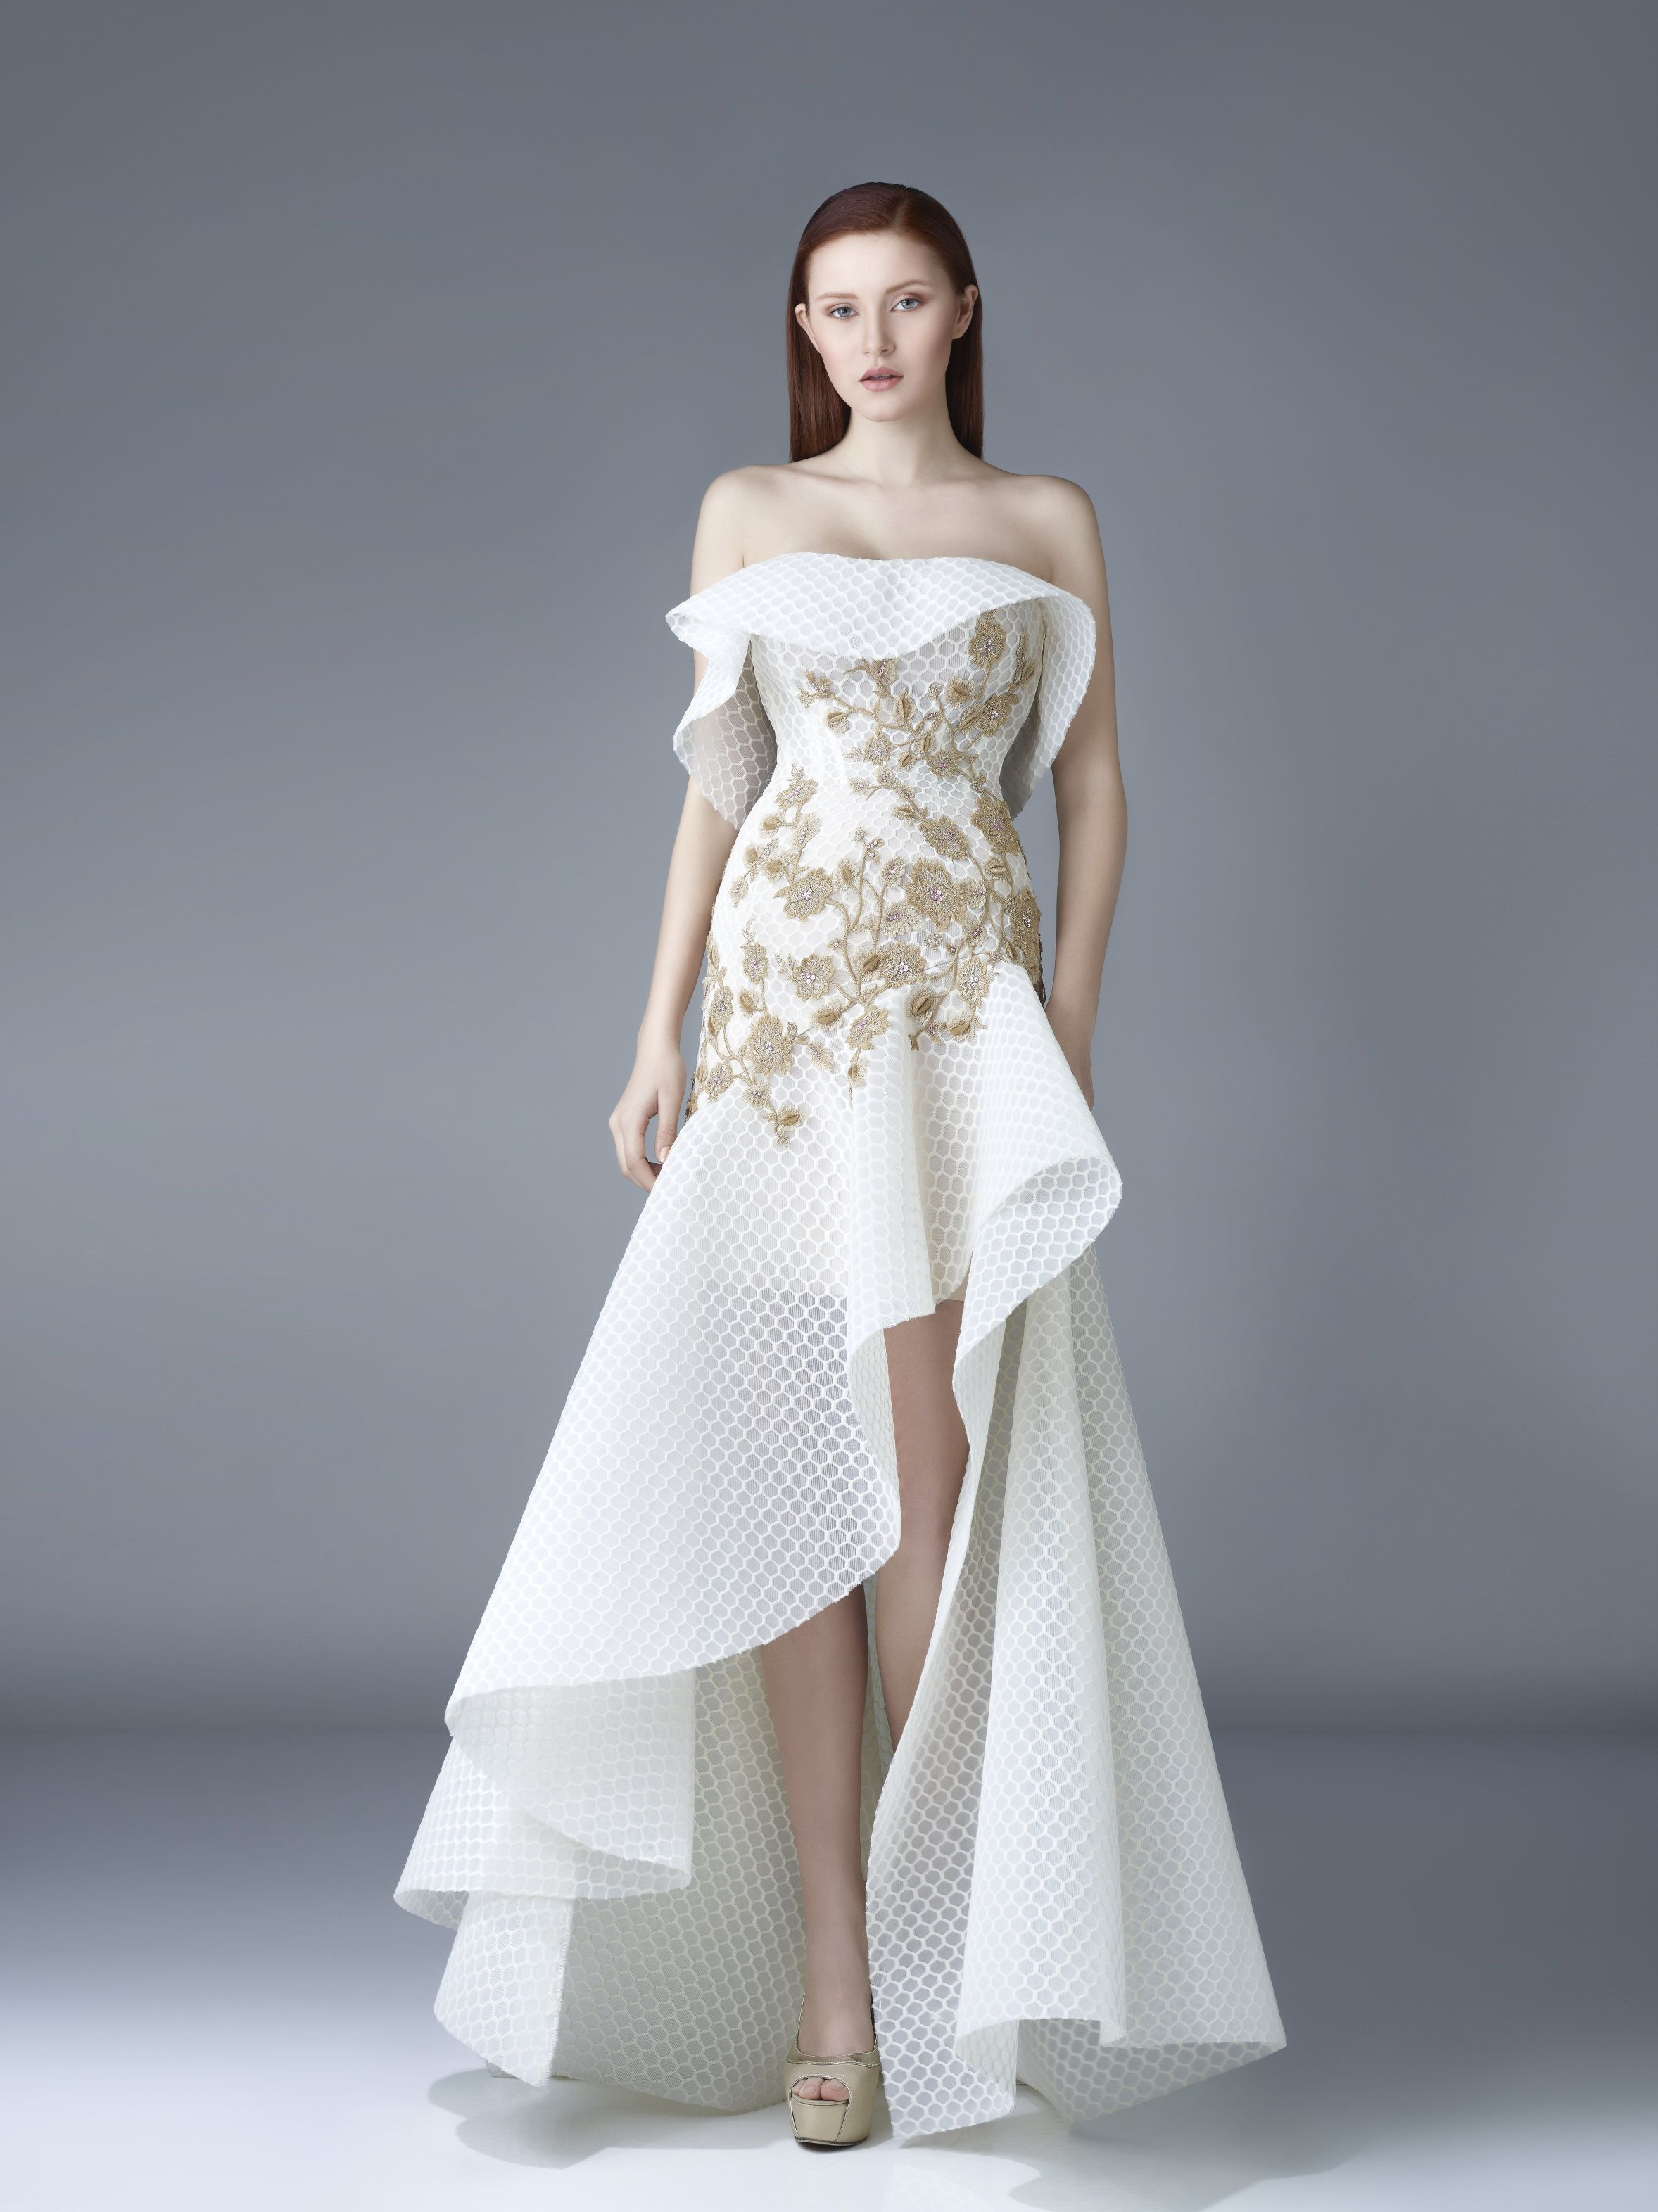 034313f385 Beside Couture by Gemy Maalouf Off the Shoulder Evening Gown BC 1181 ...